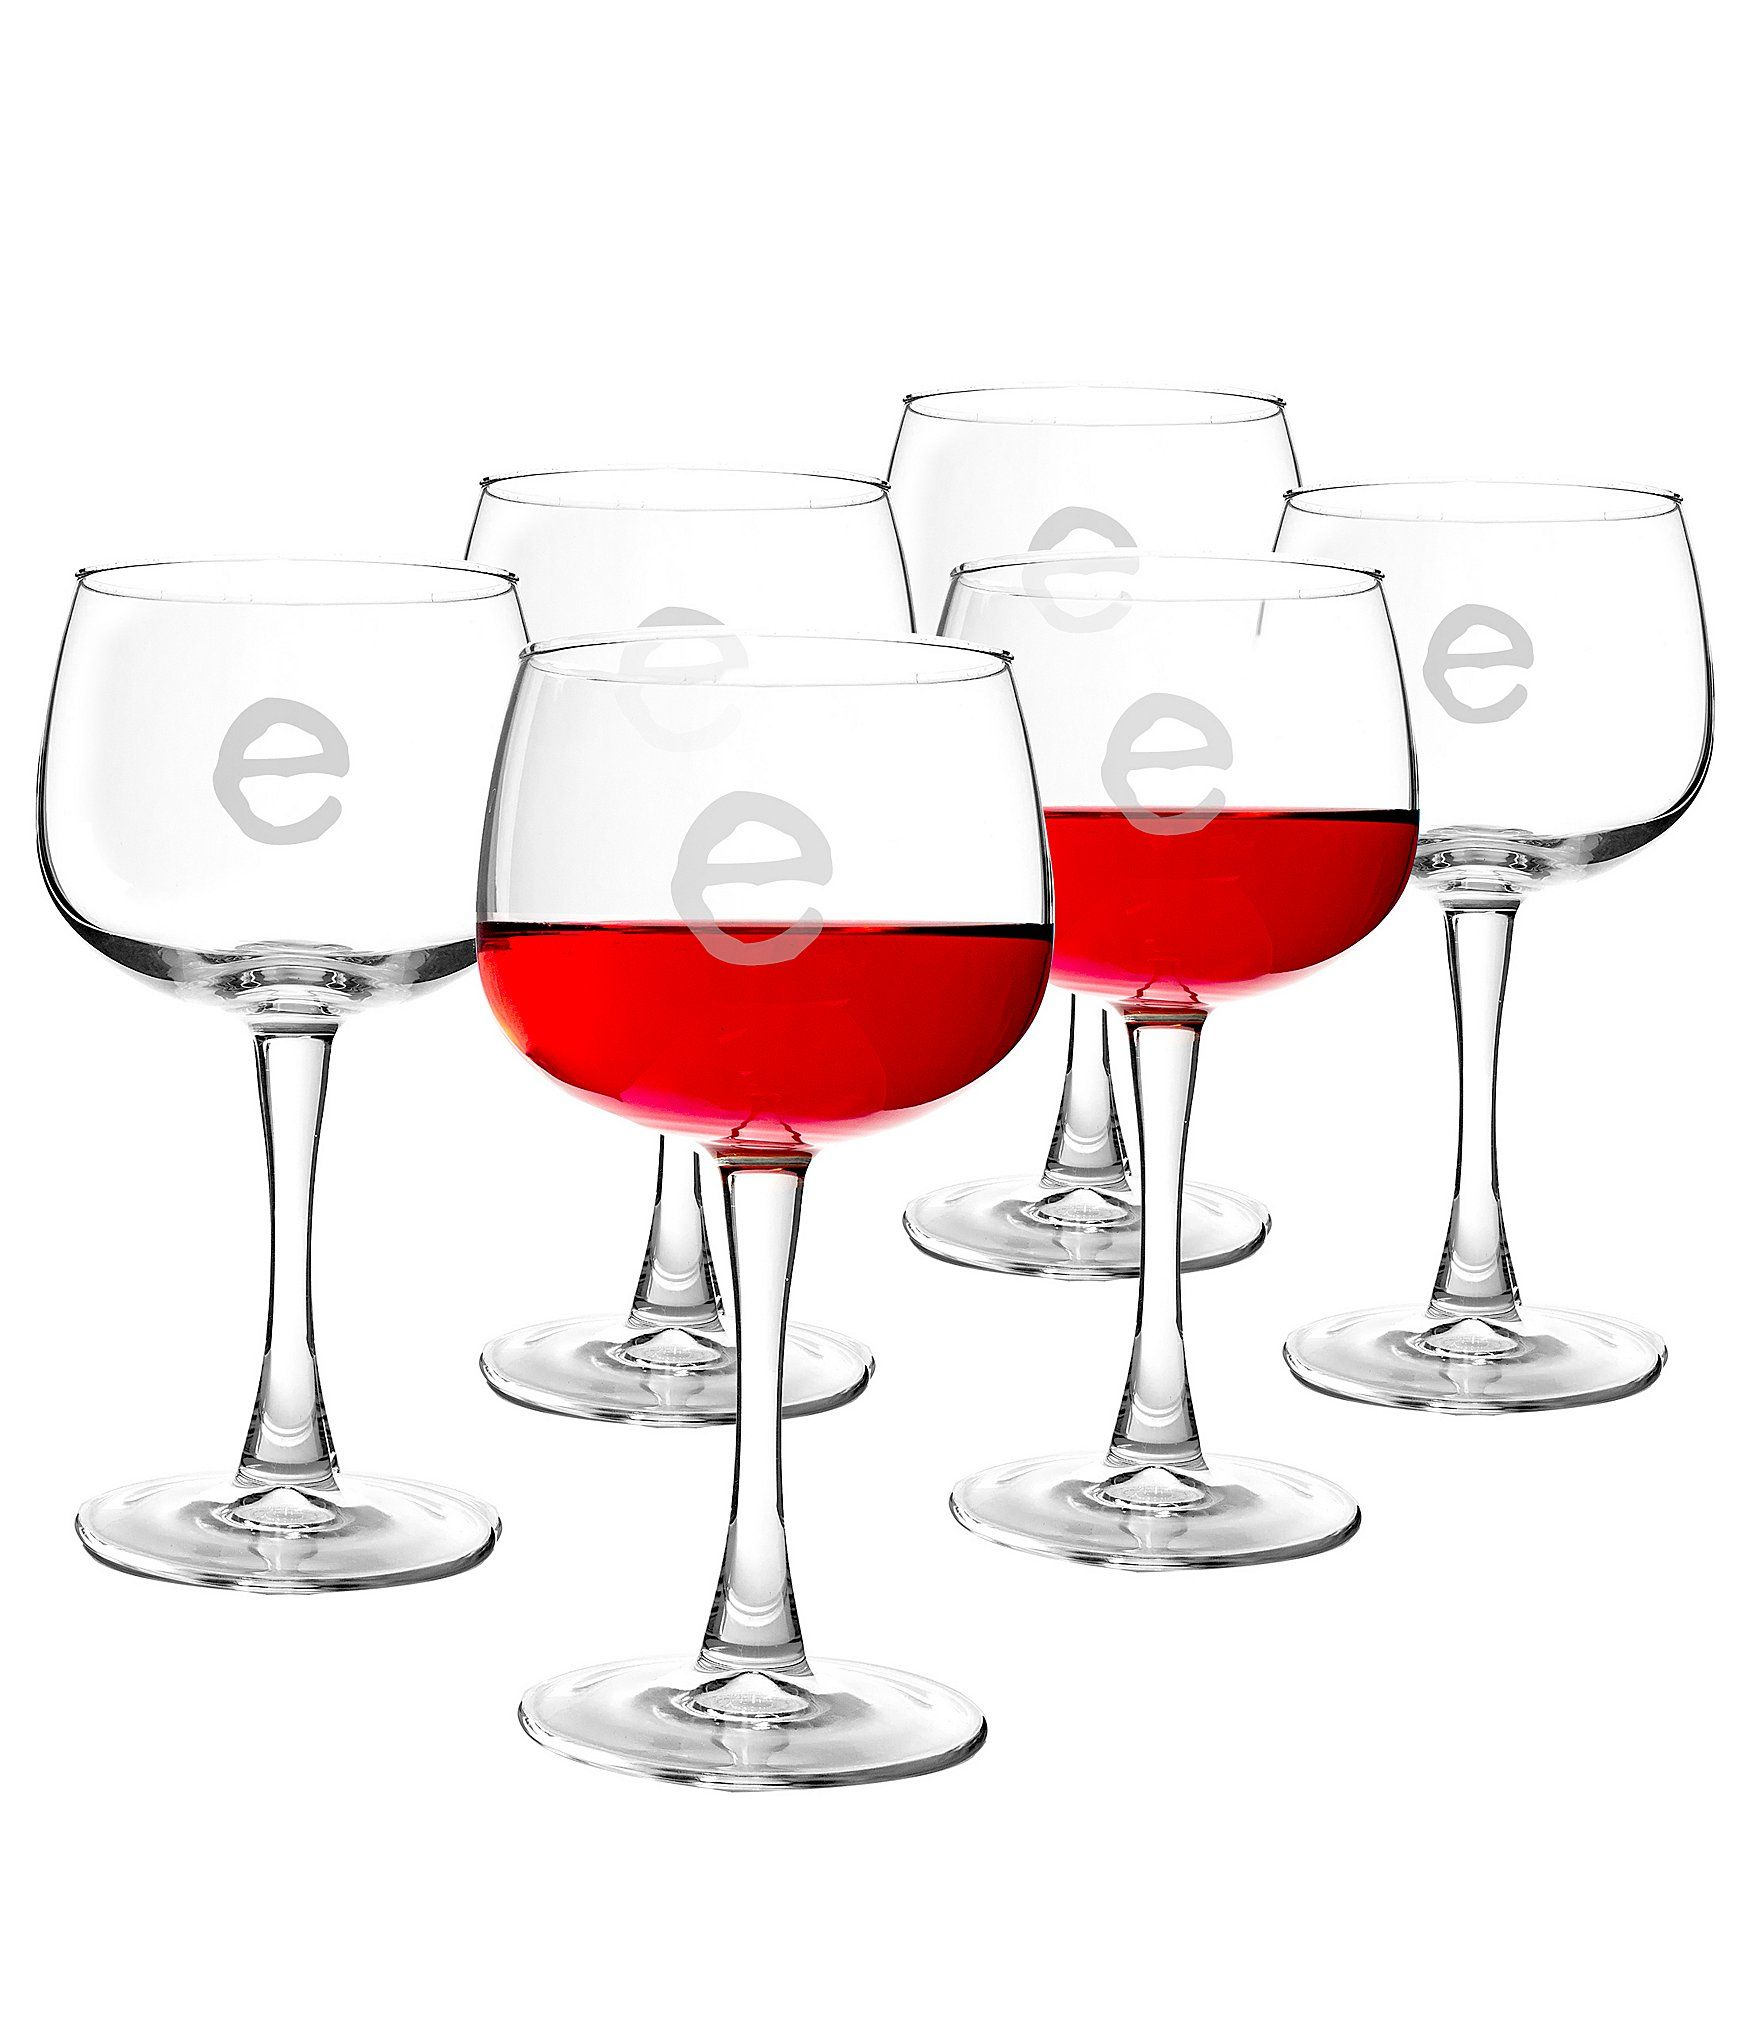 Cathy 039 S Concepts Initial Red Wine Glasses In 2020 Wine Glass Set Red Wine Red Wine Glasses